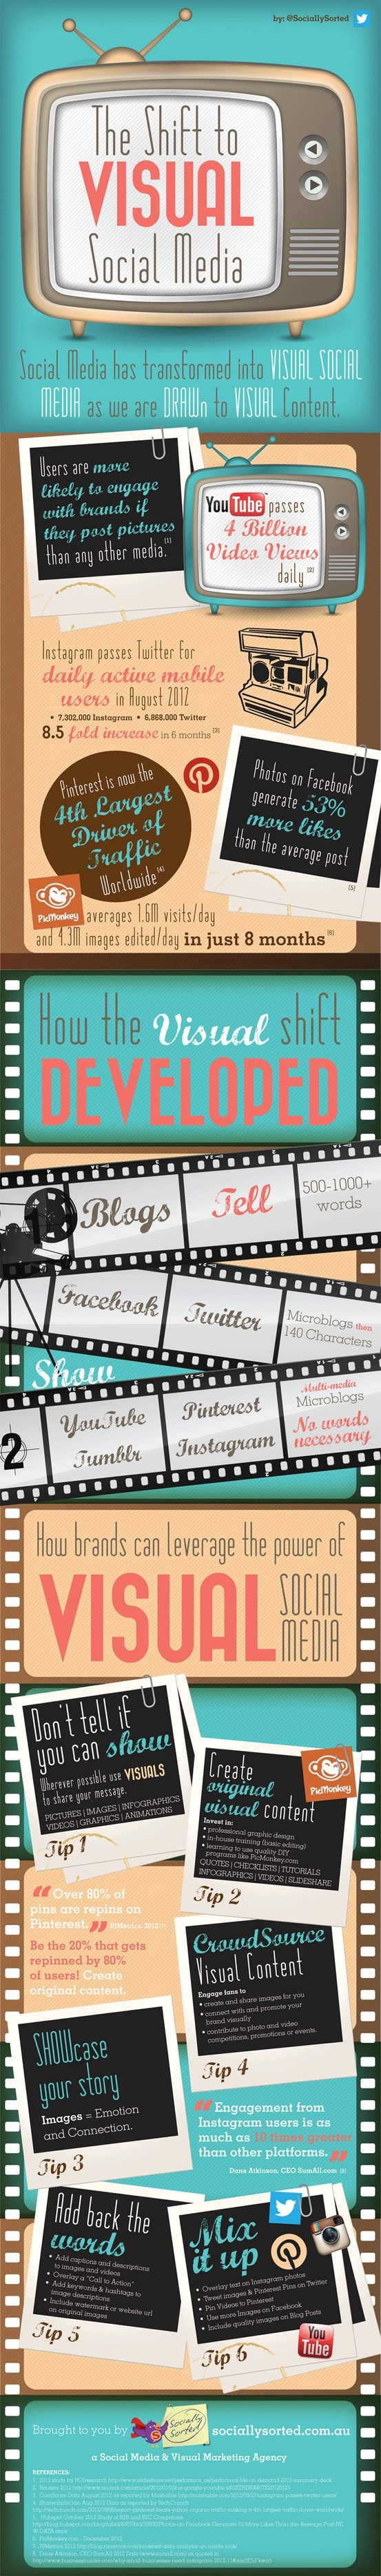 The Visual Evolution of Social Media (infographic)